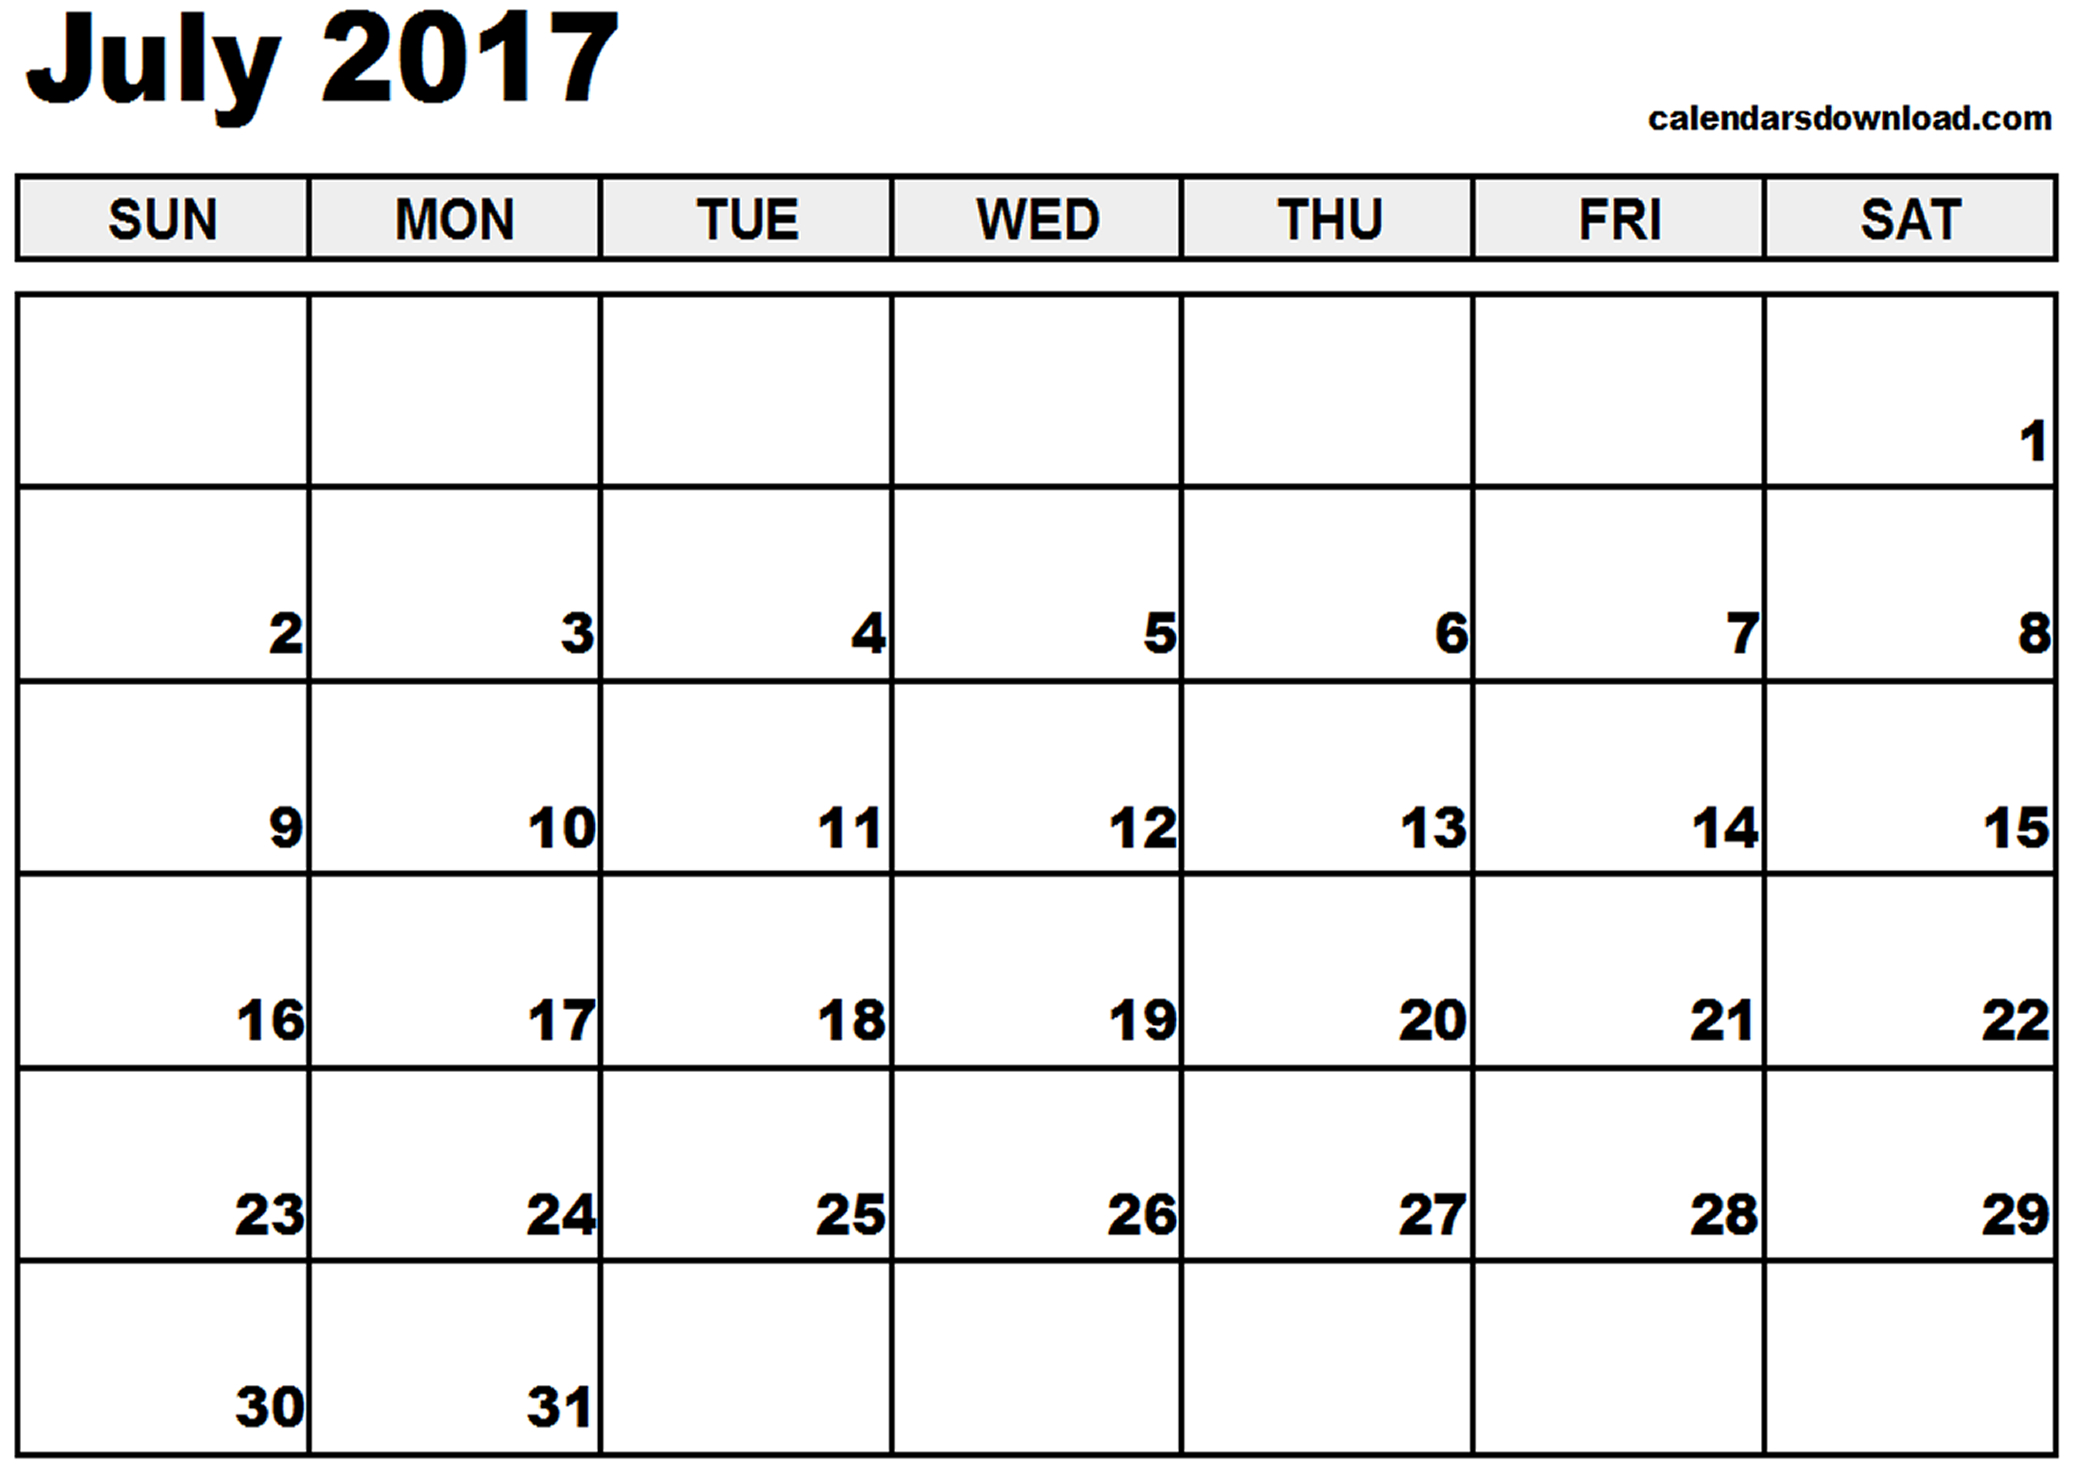 July 2017 Calendar | weekly calendar template